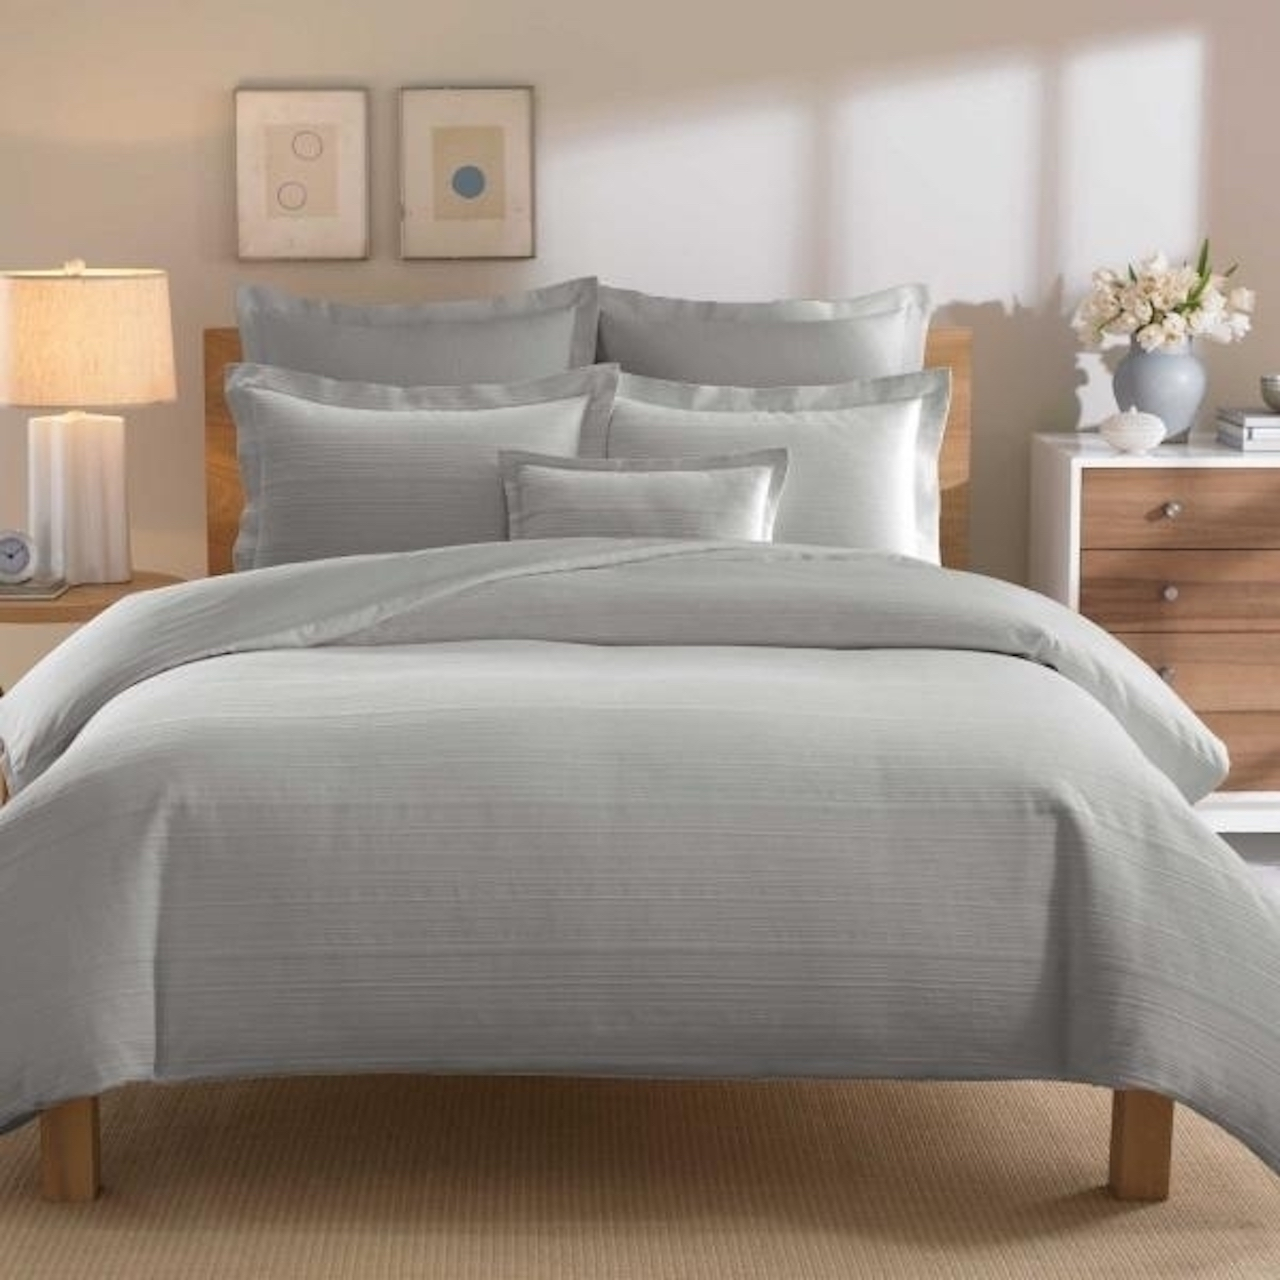 Real Simple Solutions Linear Grey European Sham - image 1 of 1